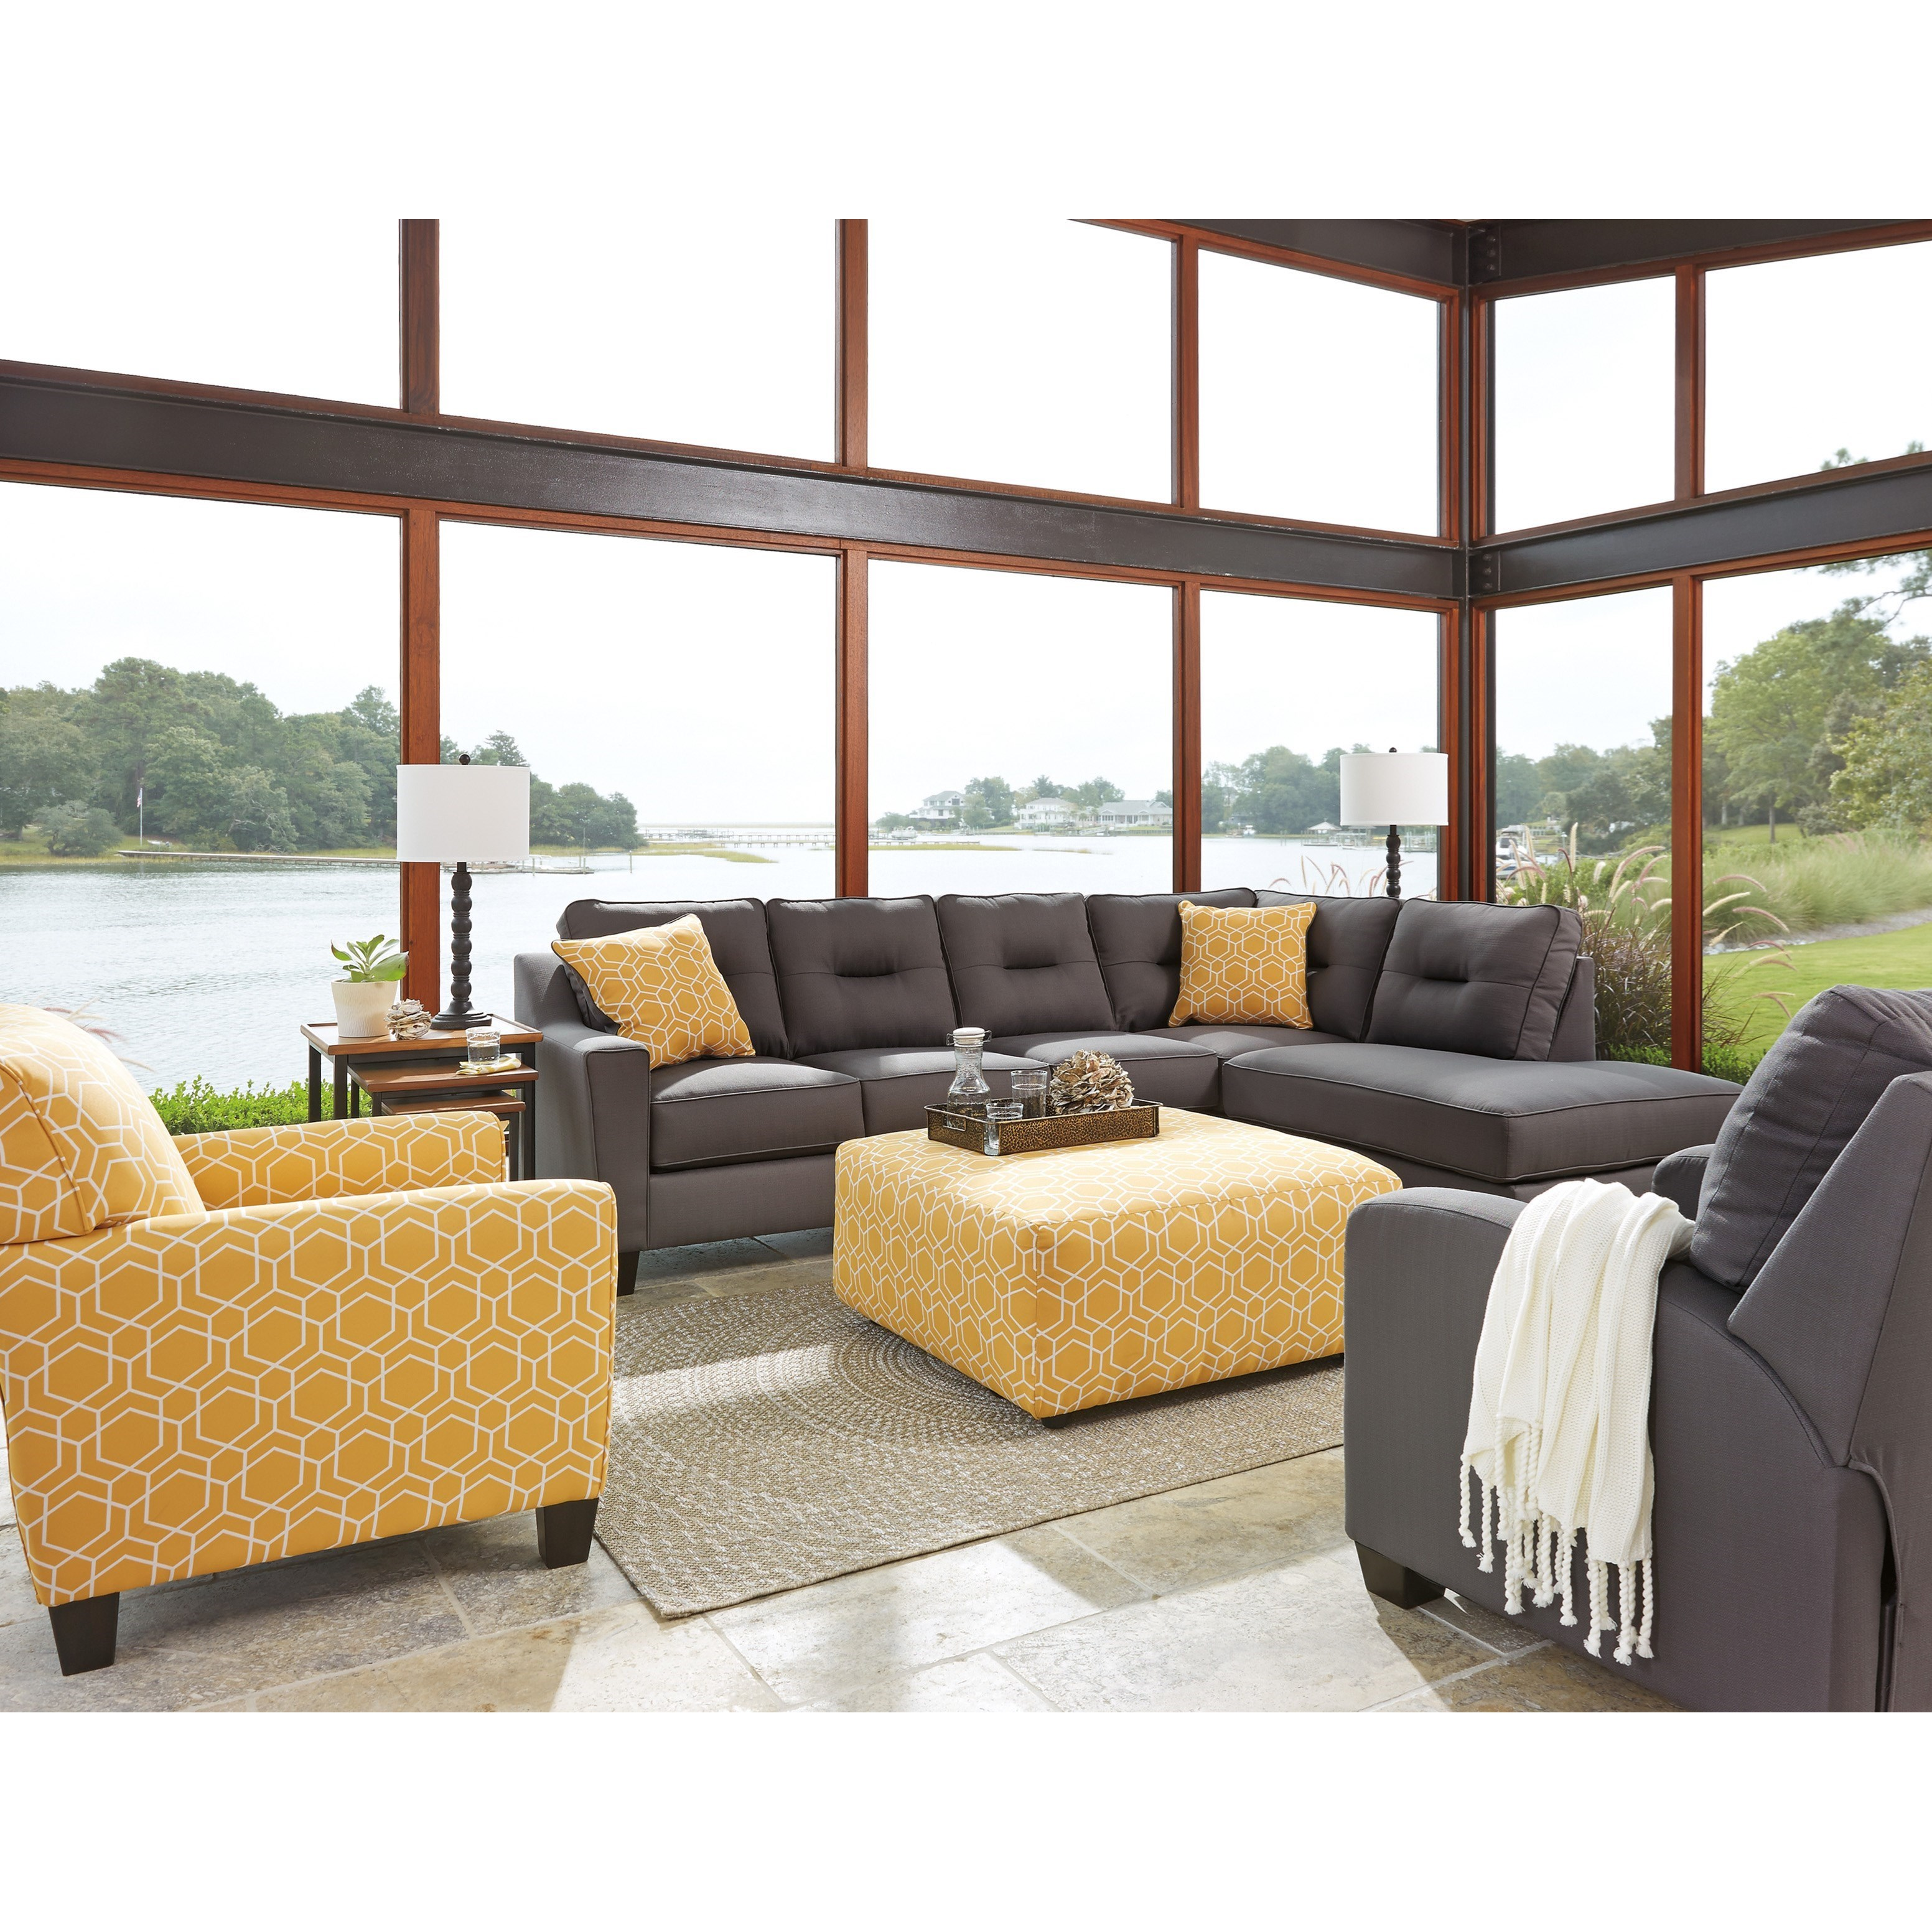 Benchcraft Kirwin Nuvella Stationary Living Room Group - Item Number: 99602 Living Room Group 8